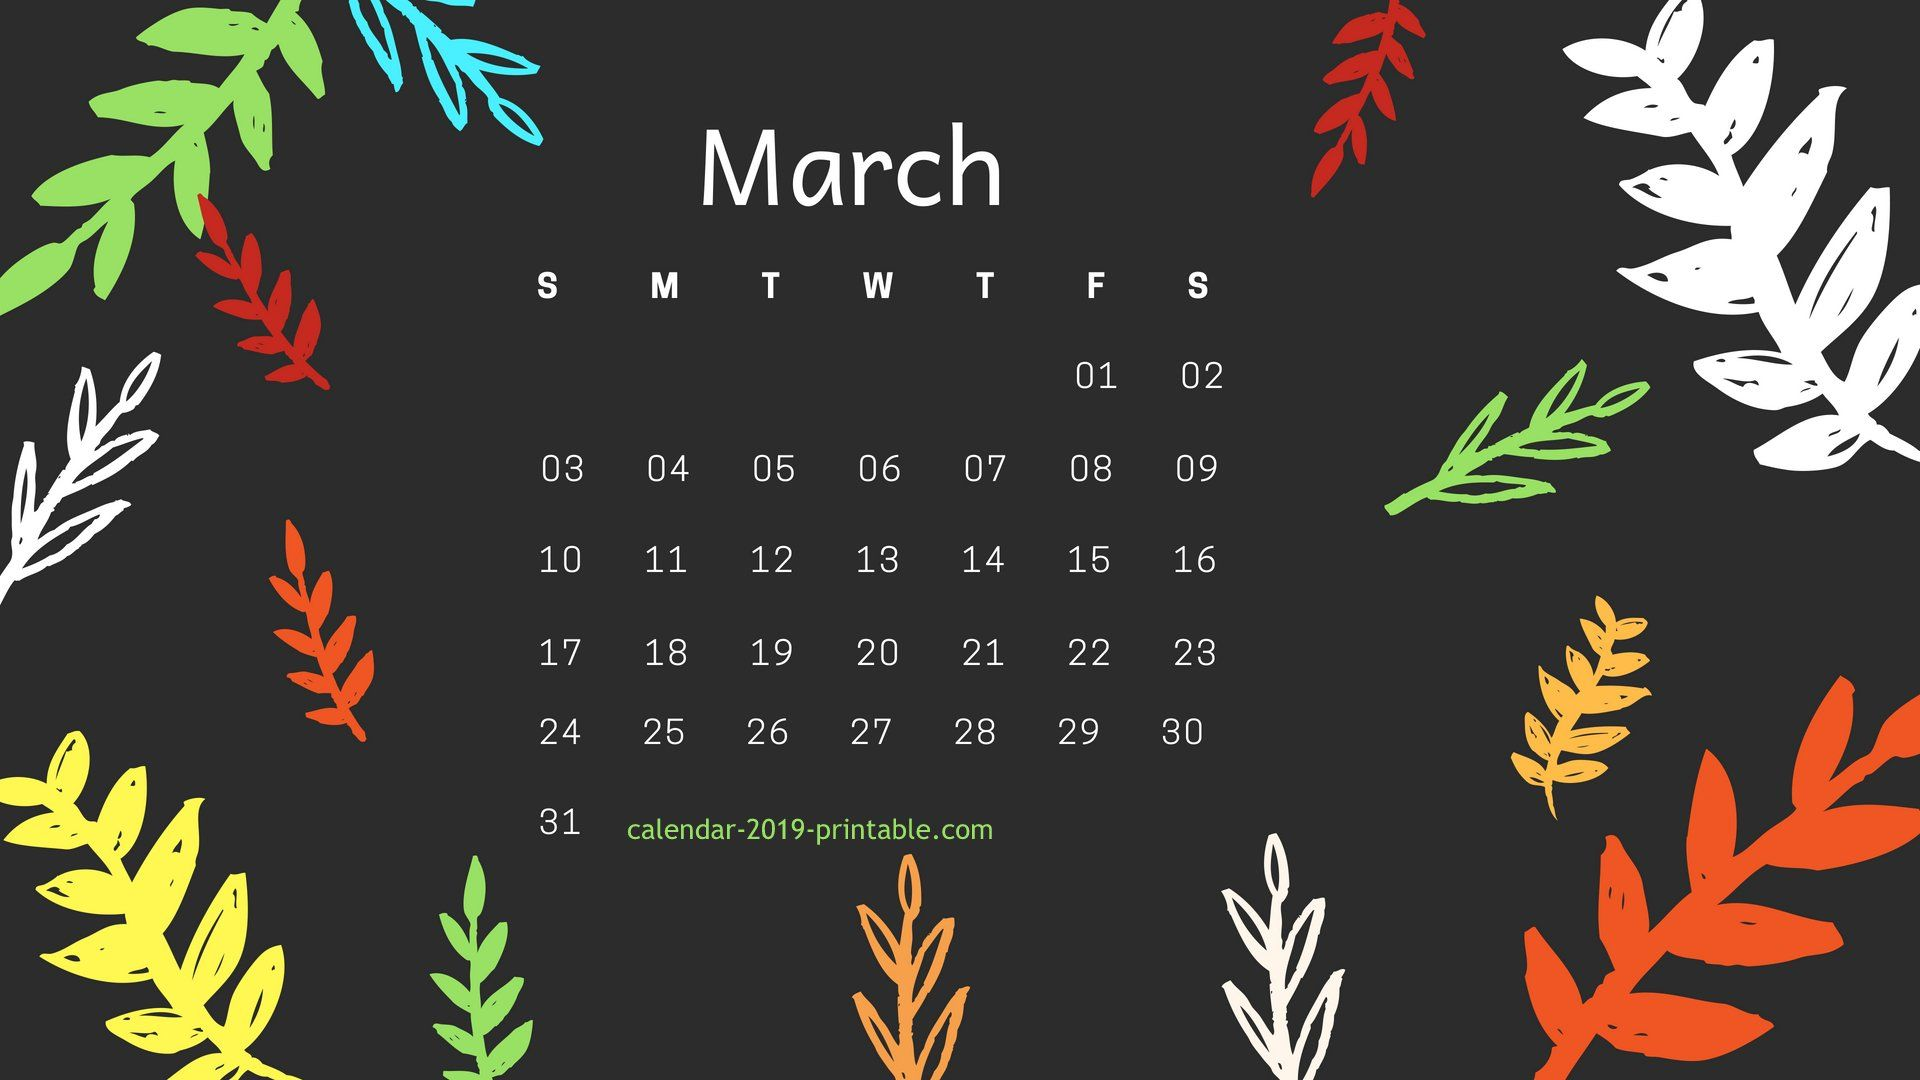 March 2019 Hd Calendar Wallpaper Desktop Wallpaper Calendar Calendar Wallpaper 2019 Calendar